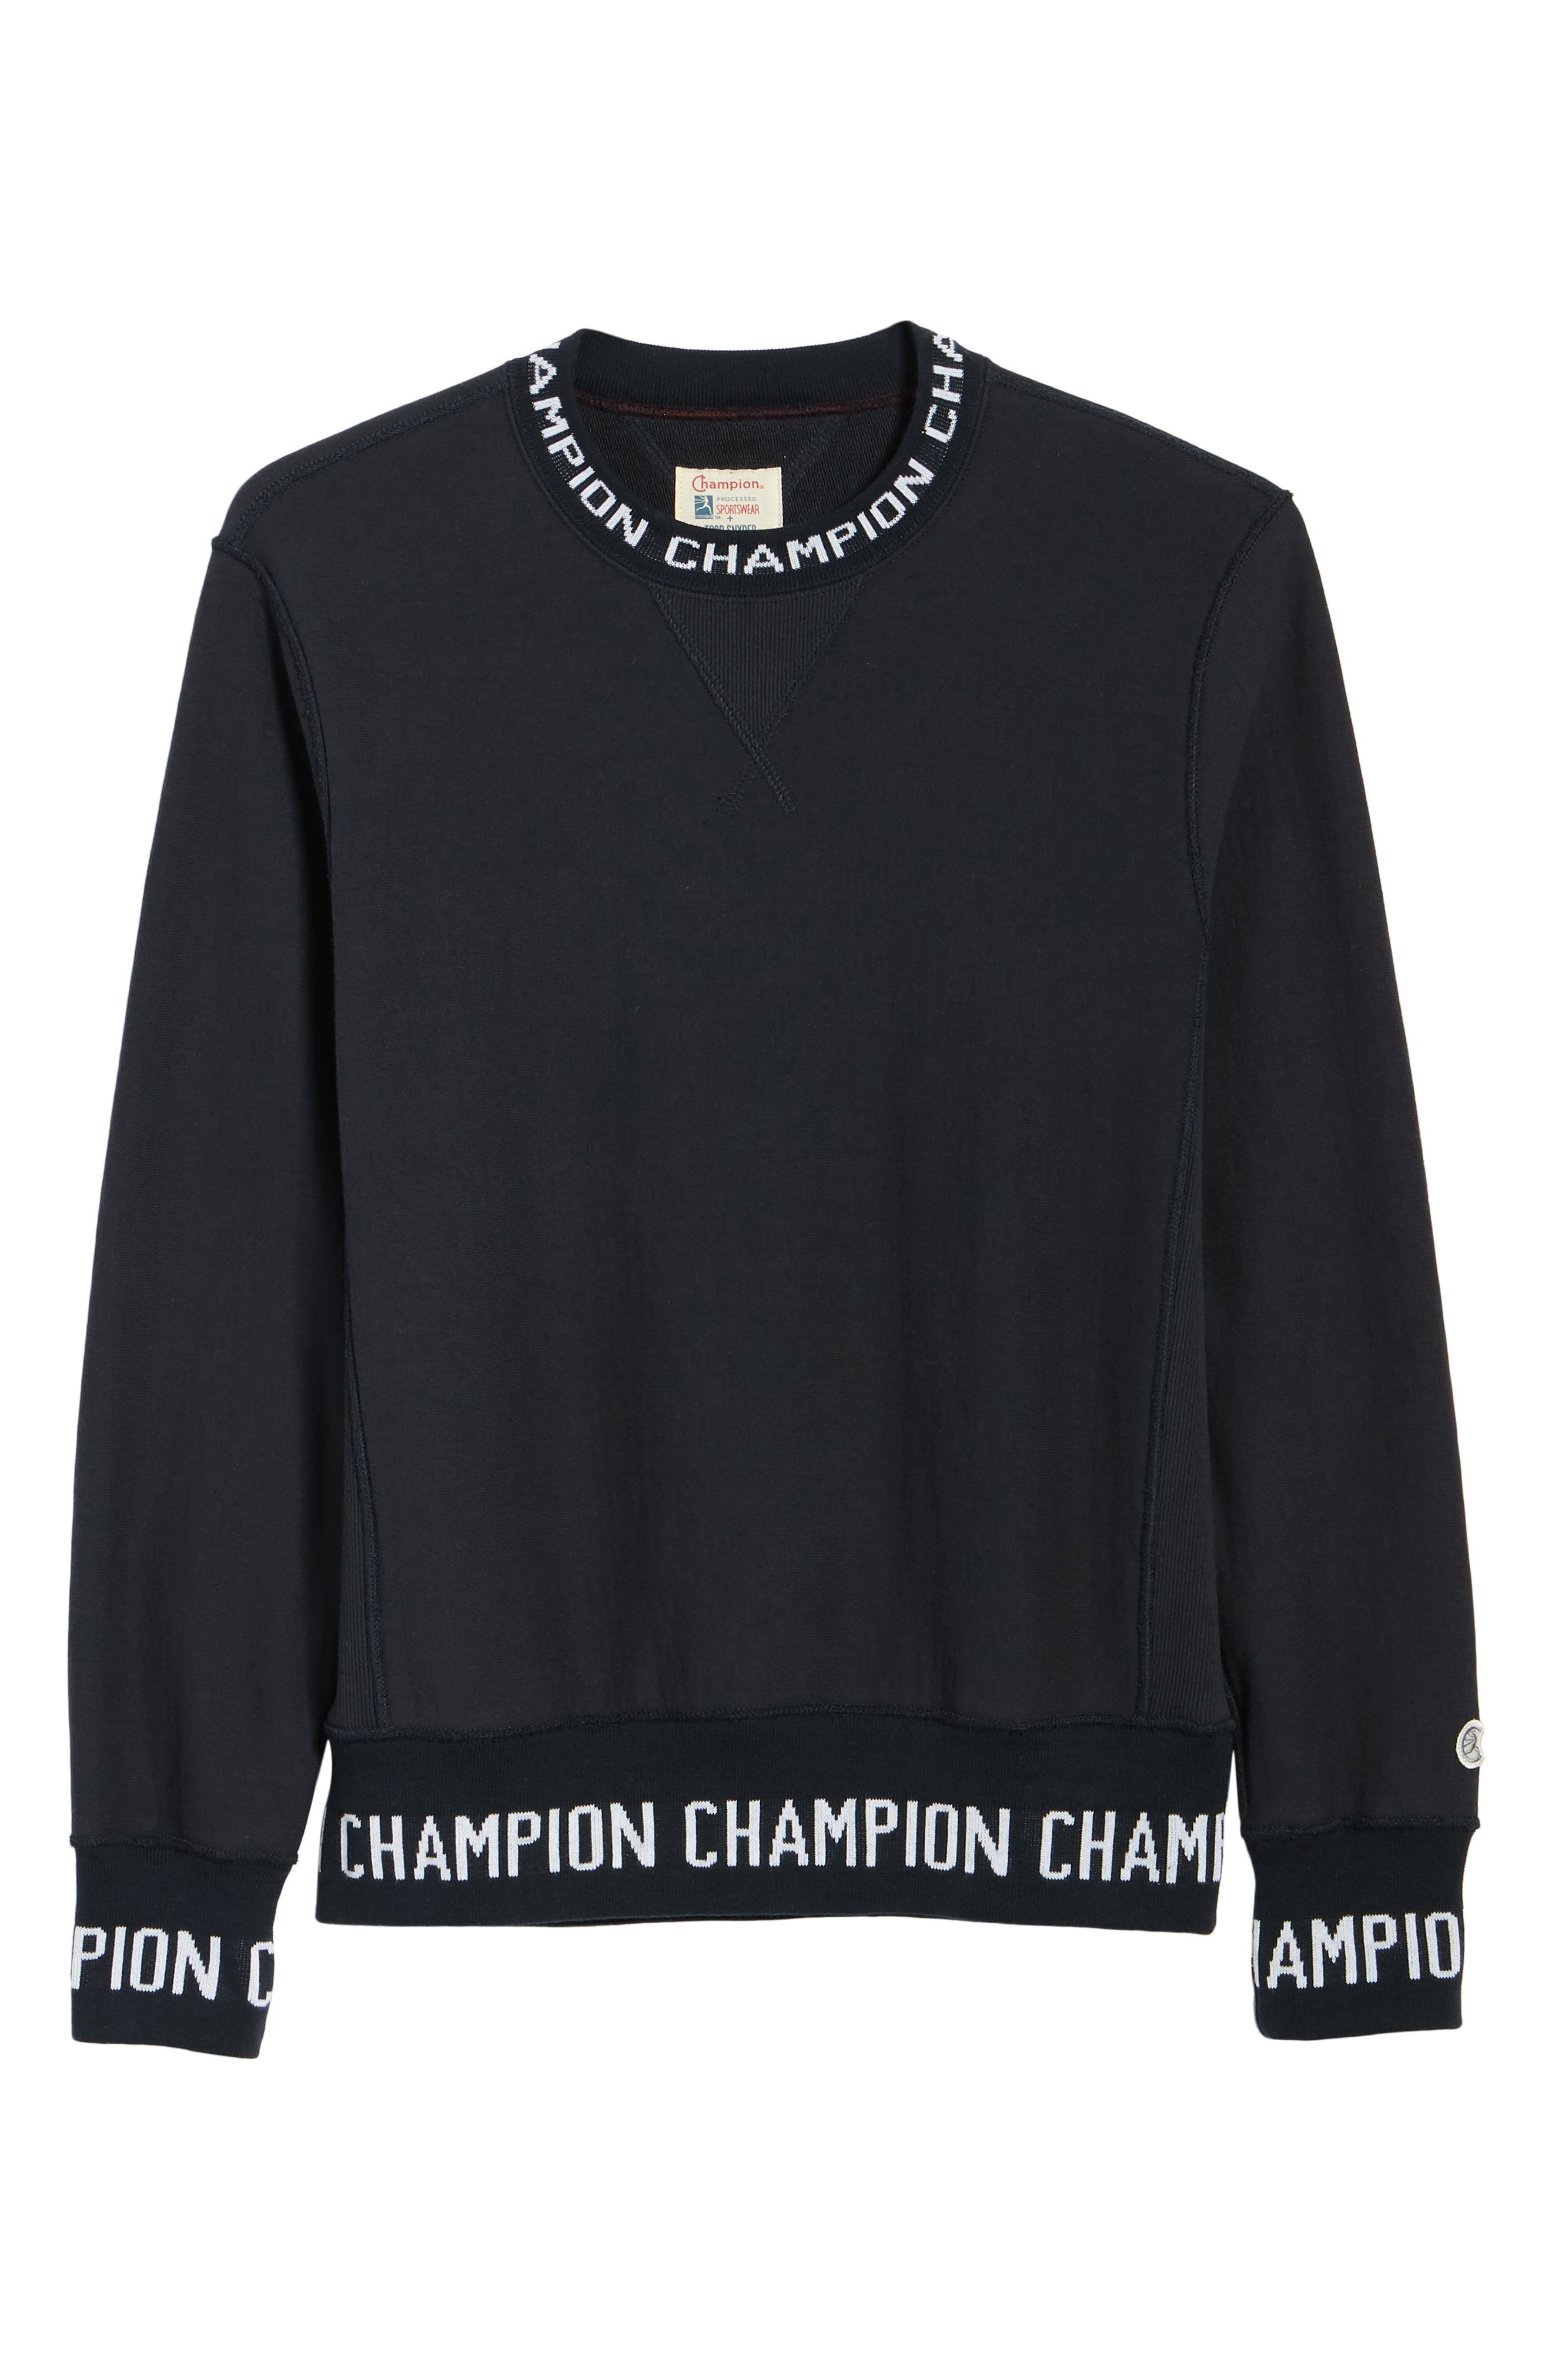 TODD SNYDER + CHAMPION, Todd Snyder x Champion Ribbed Logo Sweatshirt, Alternate thumbnail 6, color, NAVY